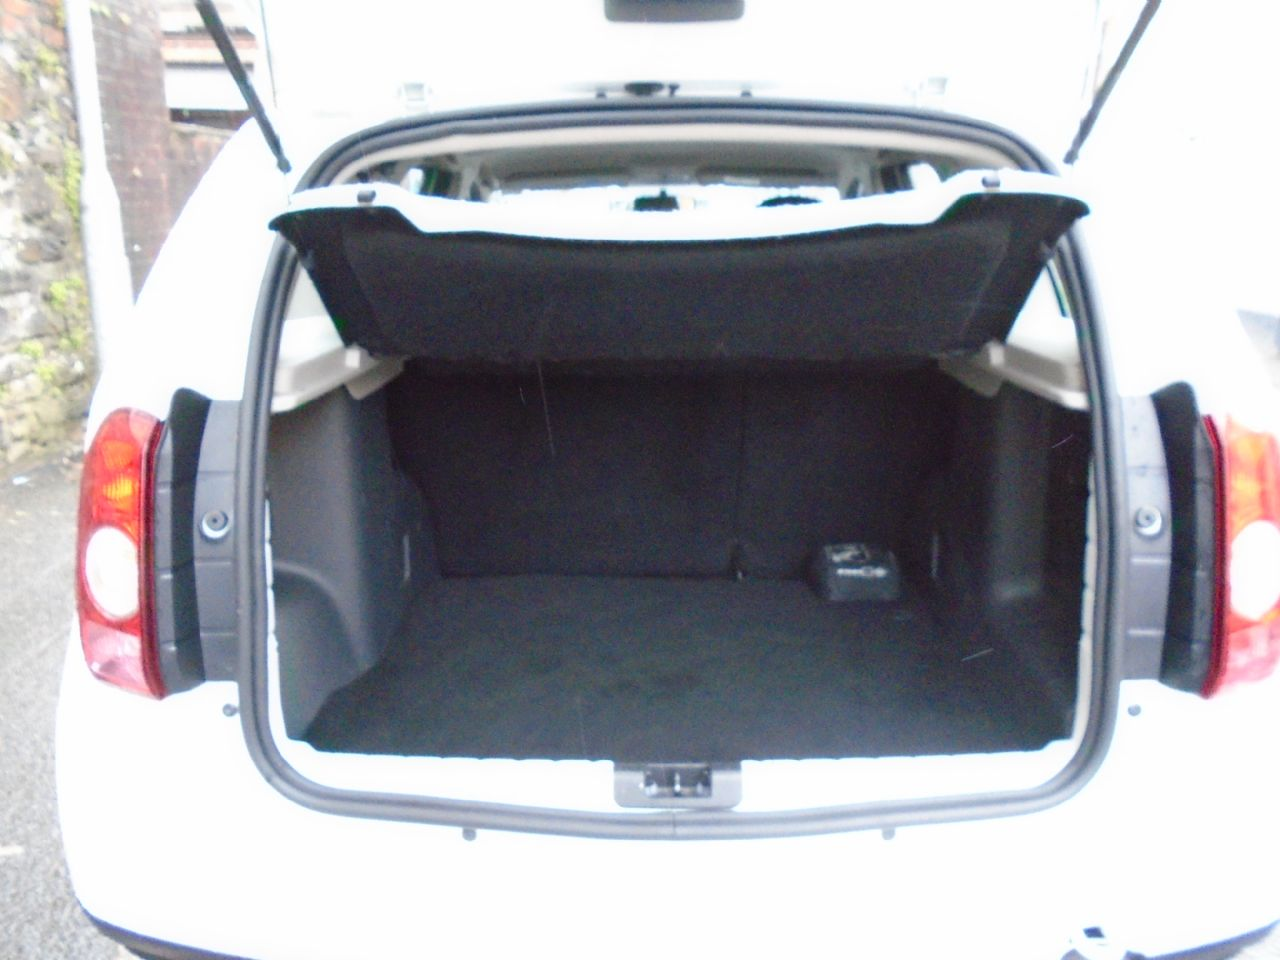 DACIA DUSTER Ambiance dCi 110 4x2 - Picture 4